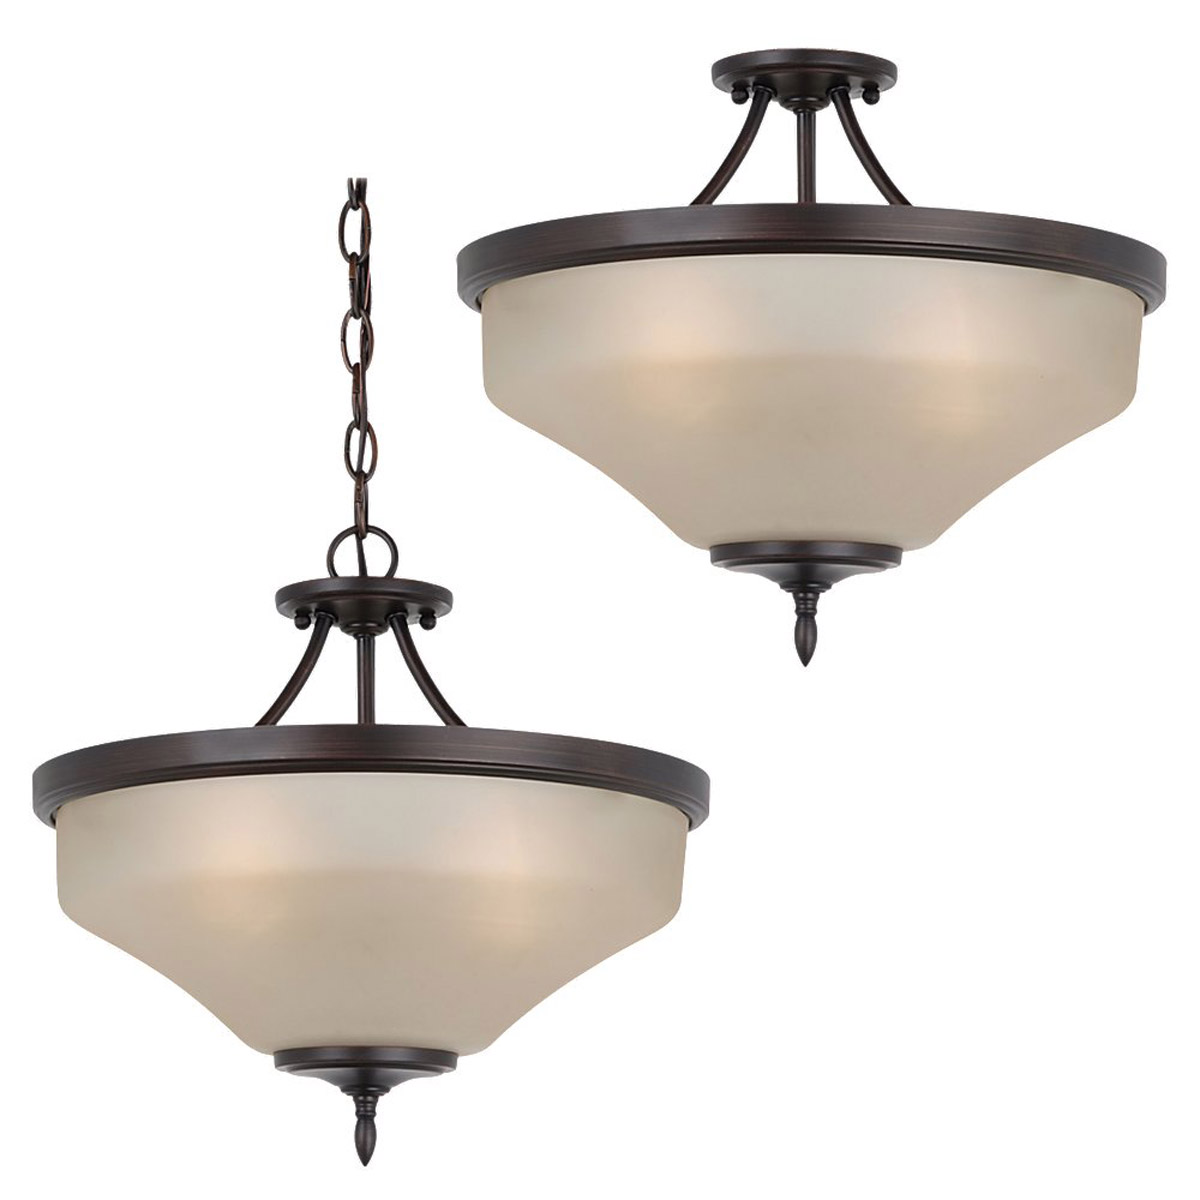 Sea Gull Lighting Montreal 3 Light Semi-Flush Mount Convertible in Burnt Sienna 77180BLE-710